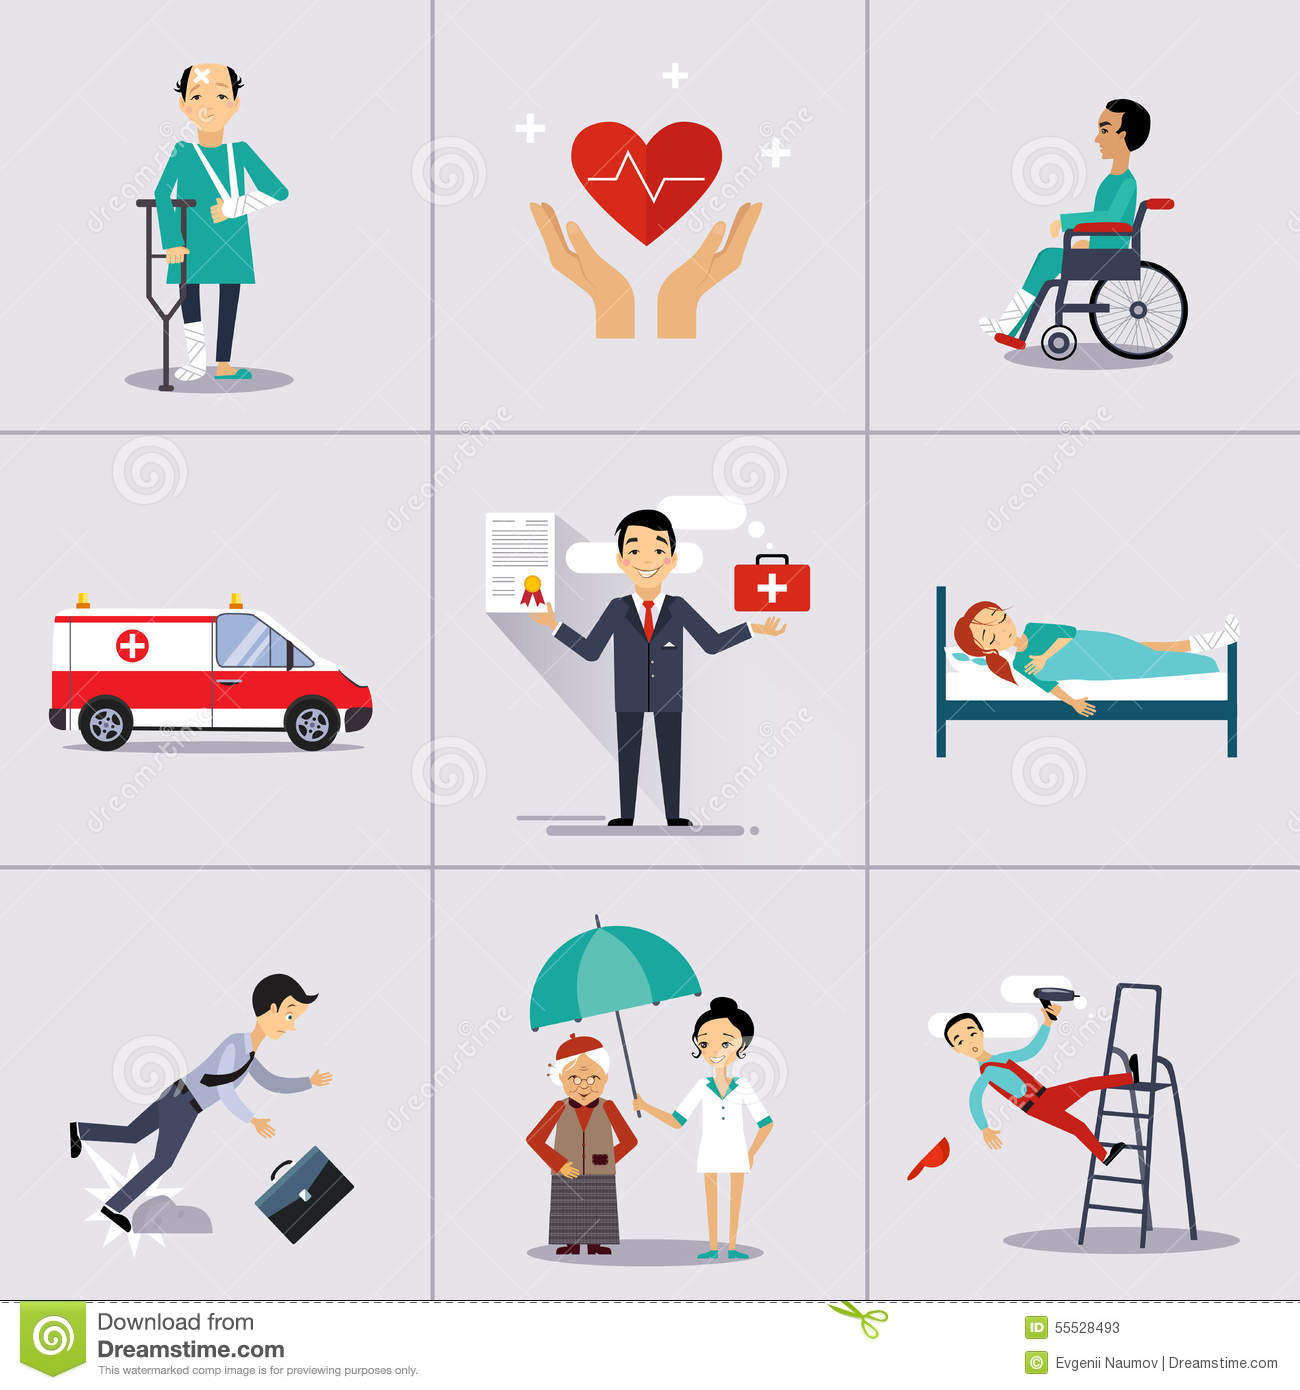 Illustrator Character Design Templates : Insurance character and icons template vector stock